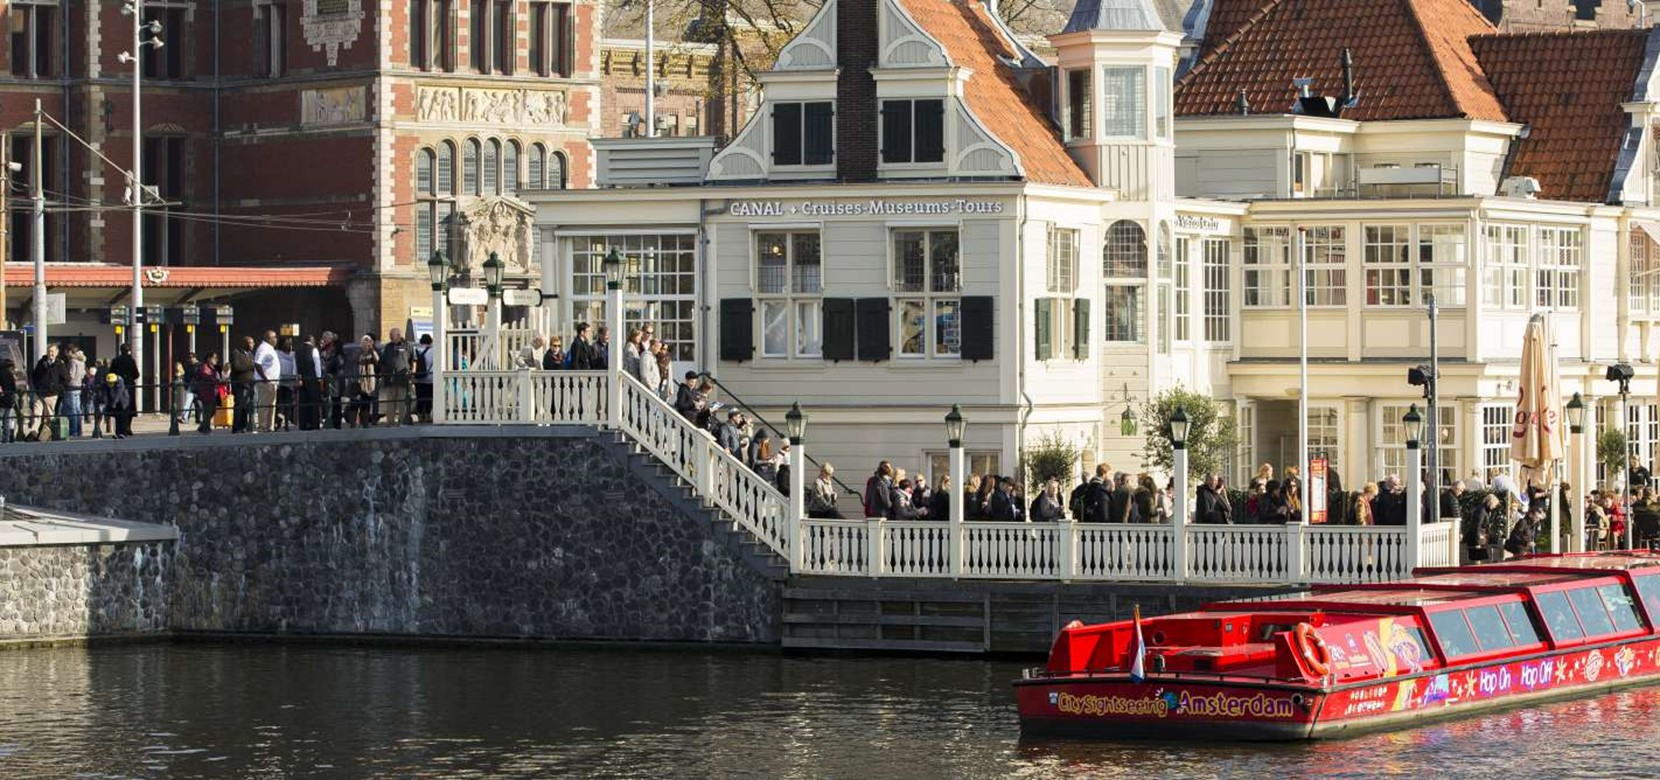 Experience the many things to do in Amsterdam